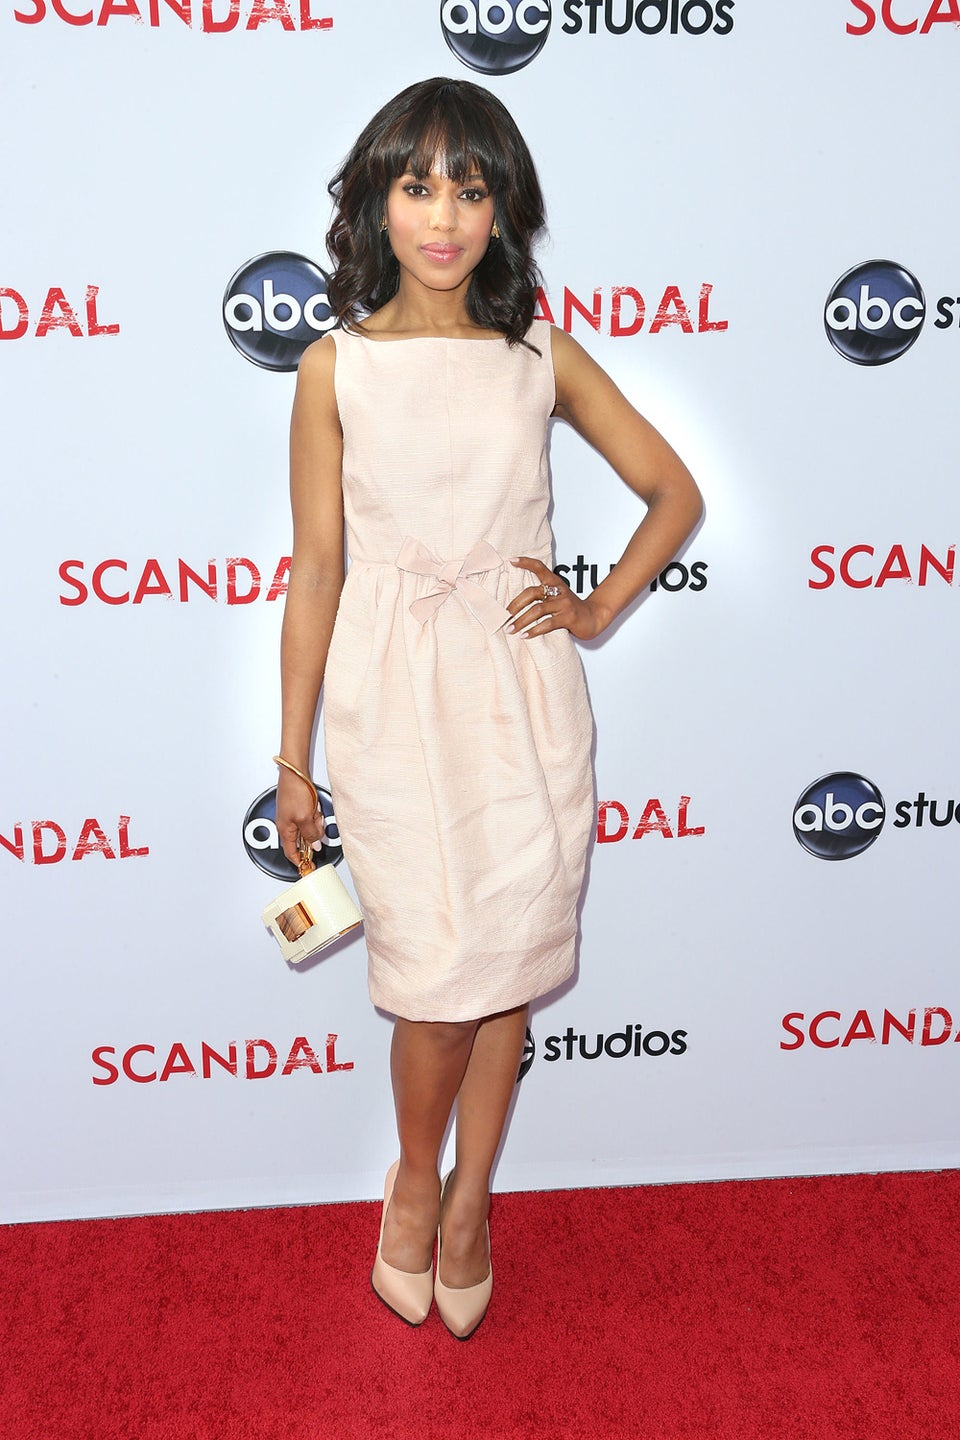 Kerry Washington Received Death Threats for Supporting Obama